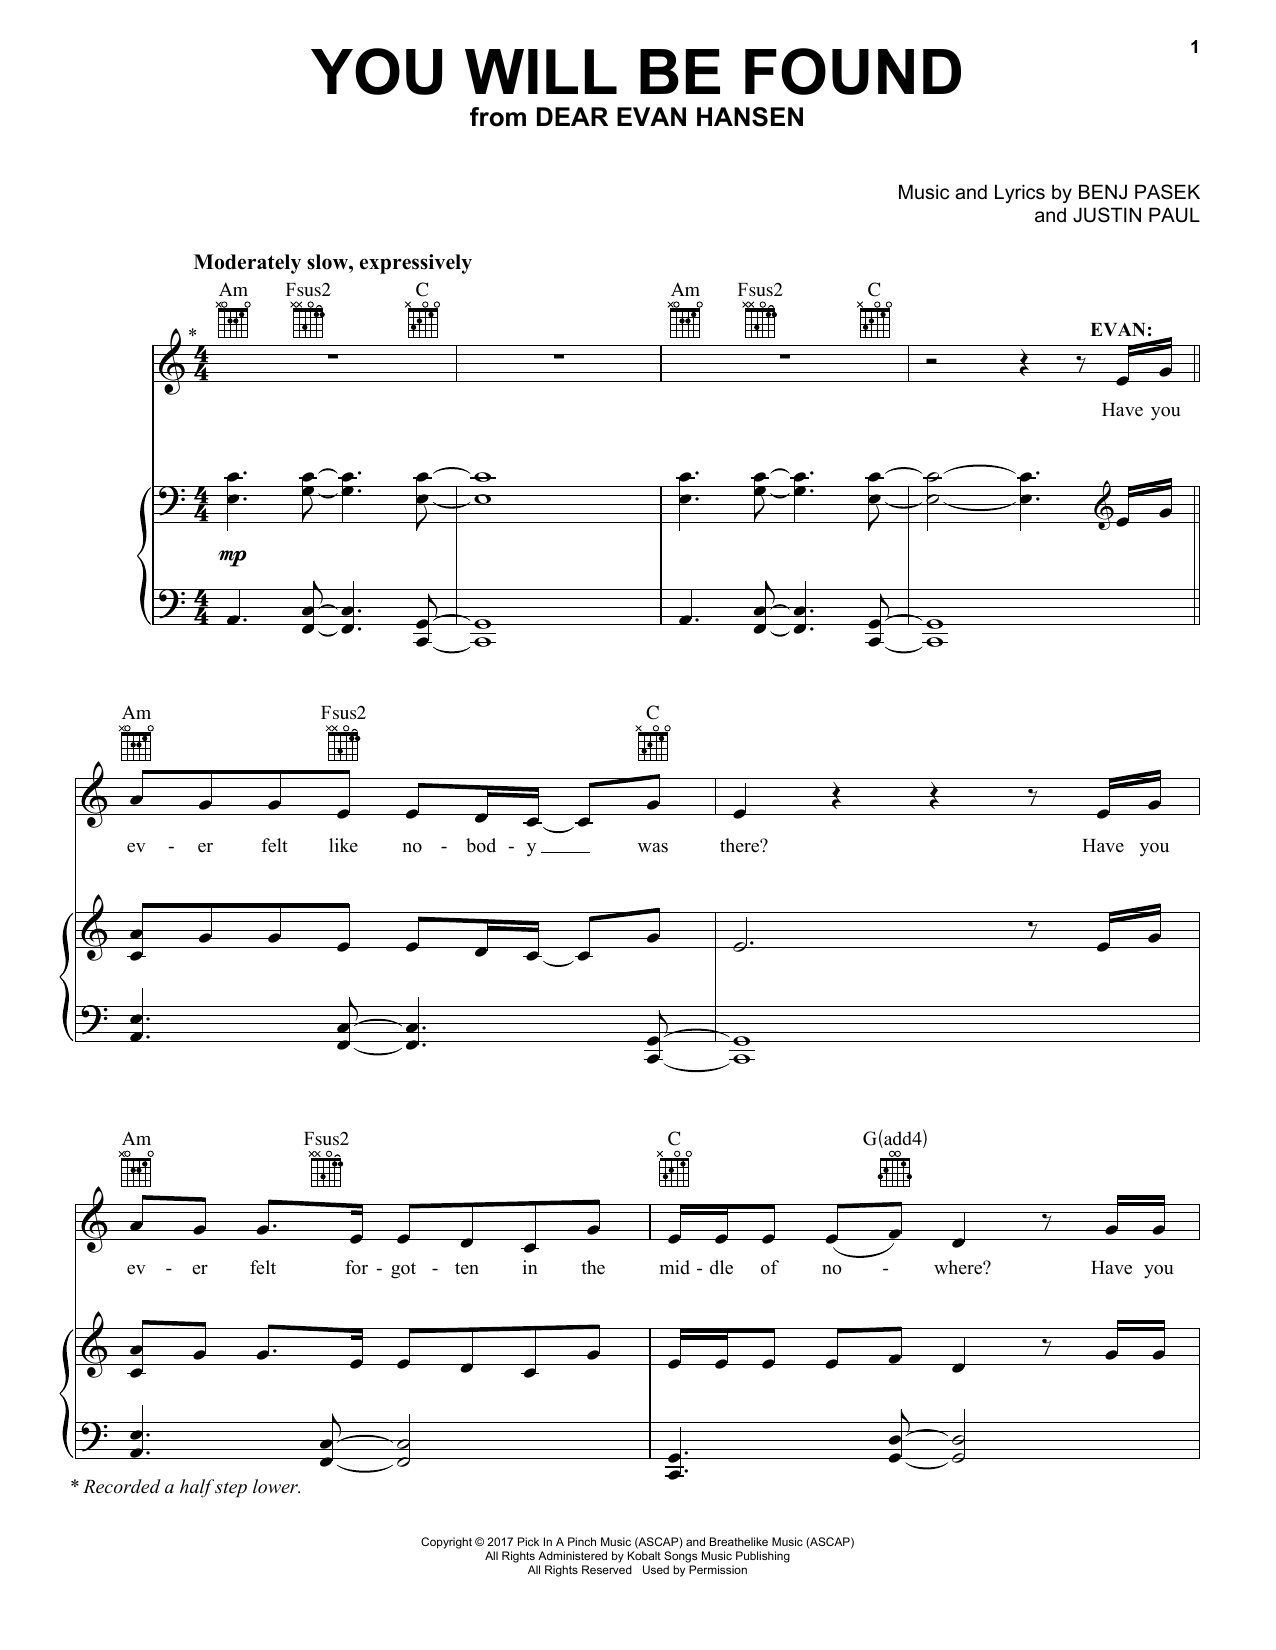 Pasek & Paul You Will Be Found (from Dear Evan Hansen) sheet music notes and chords. Download Printable PDF.